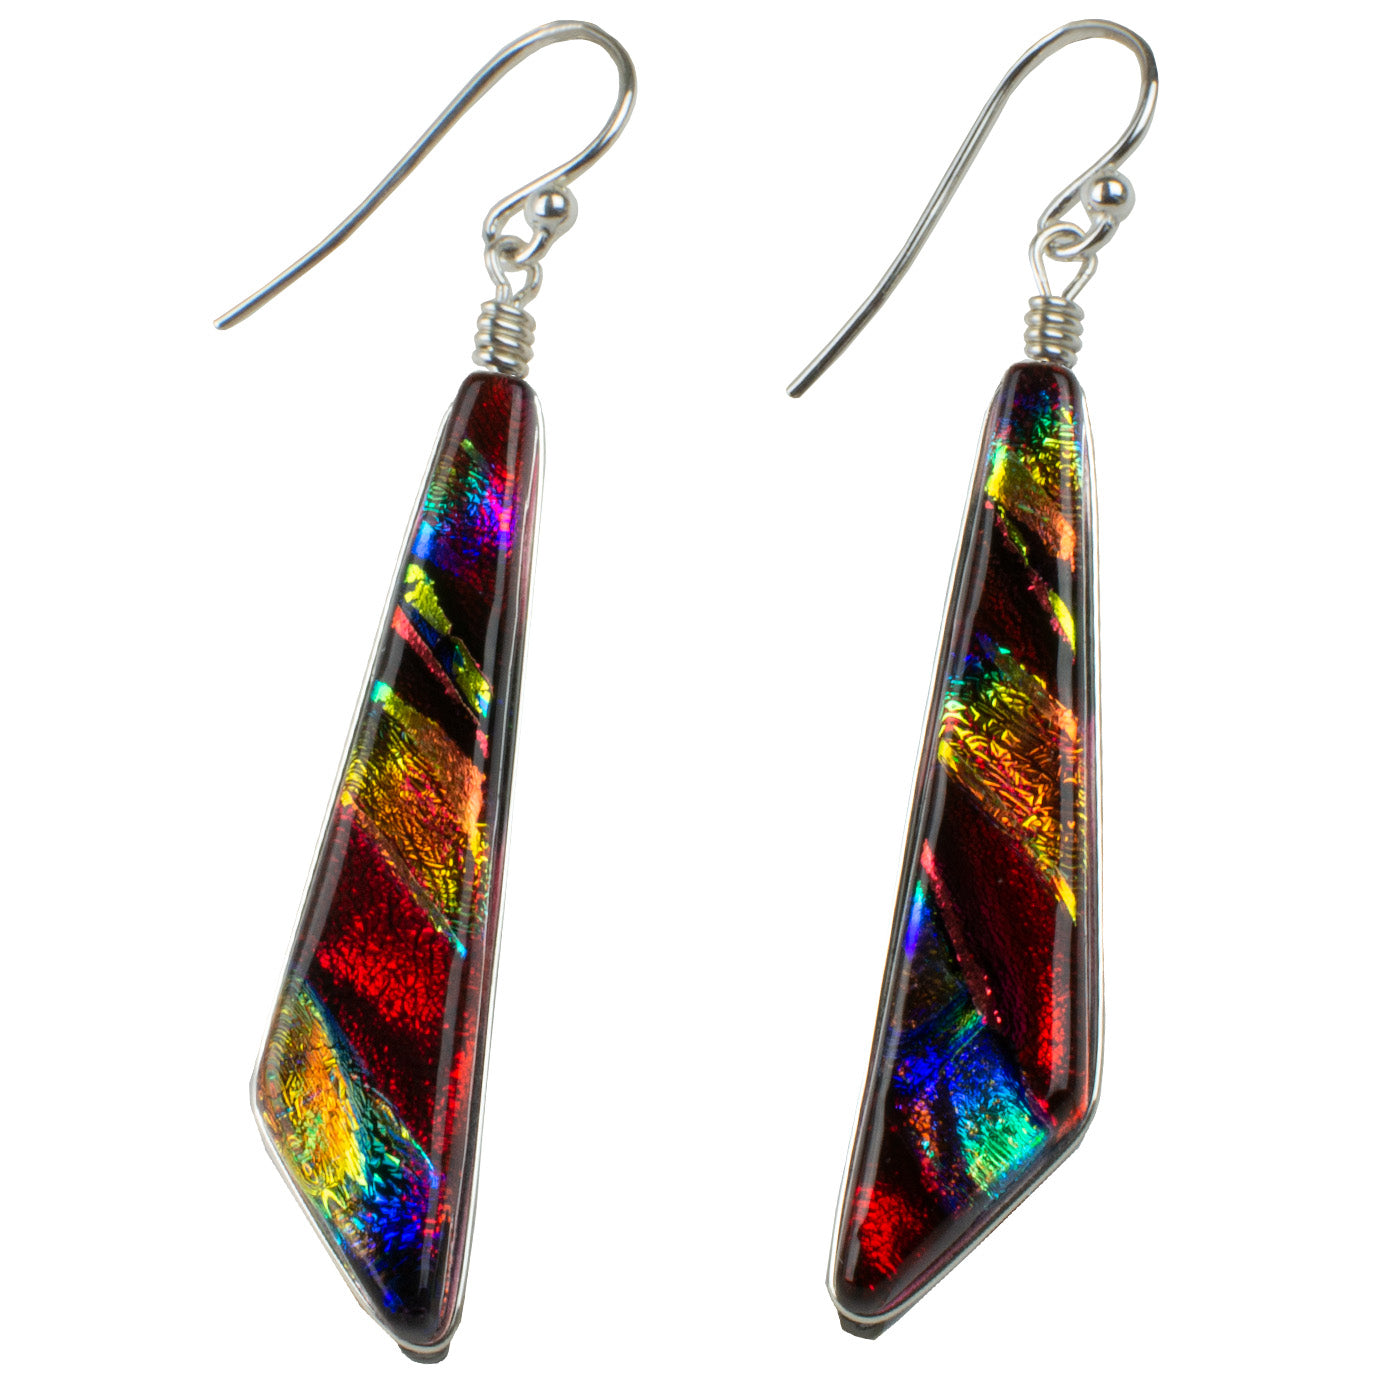 Cascades Earrings - Rainbow Red by Nickel Smart - athenaallergy.com, handmade in the USA